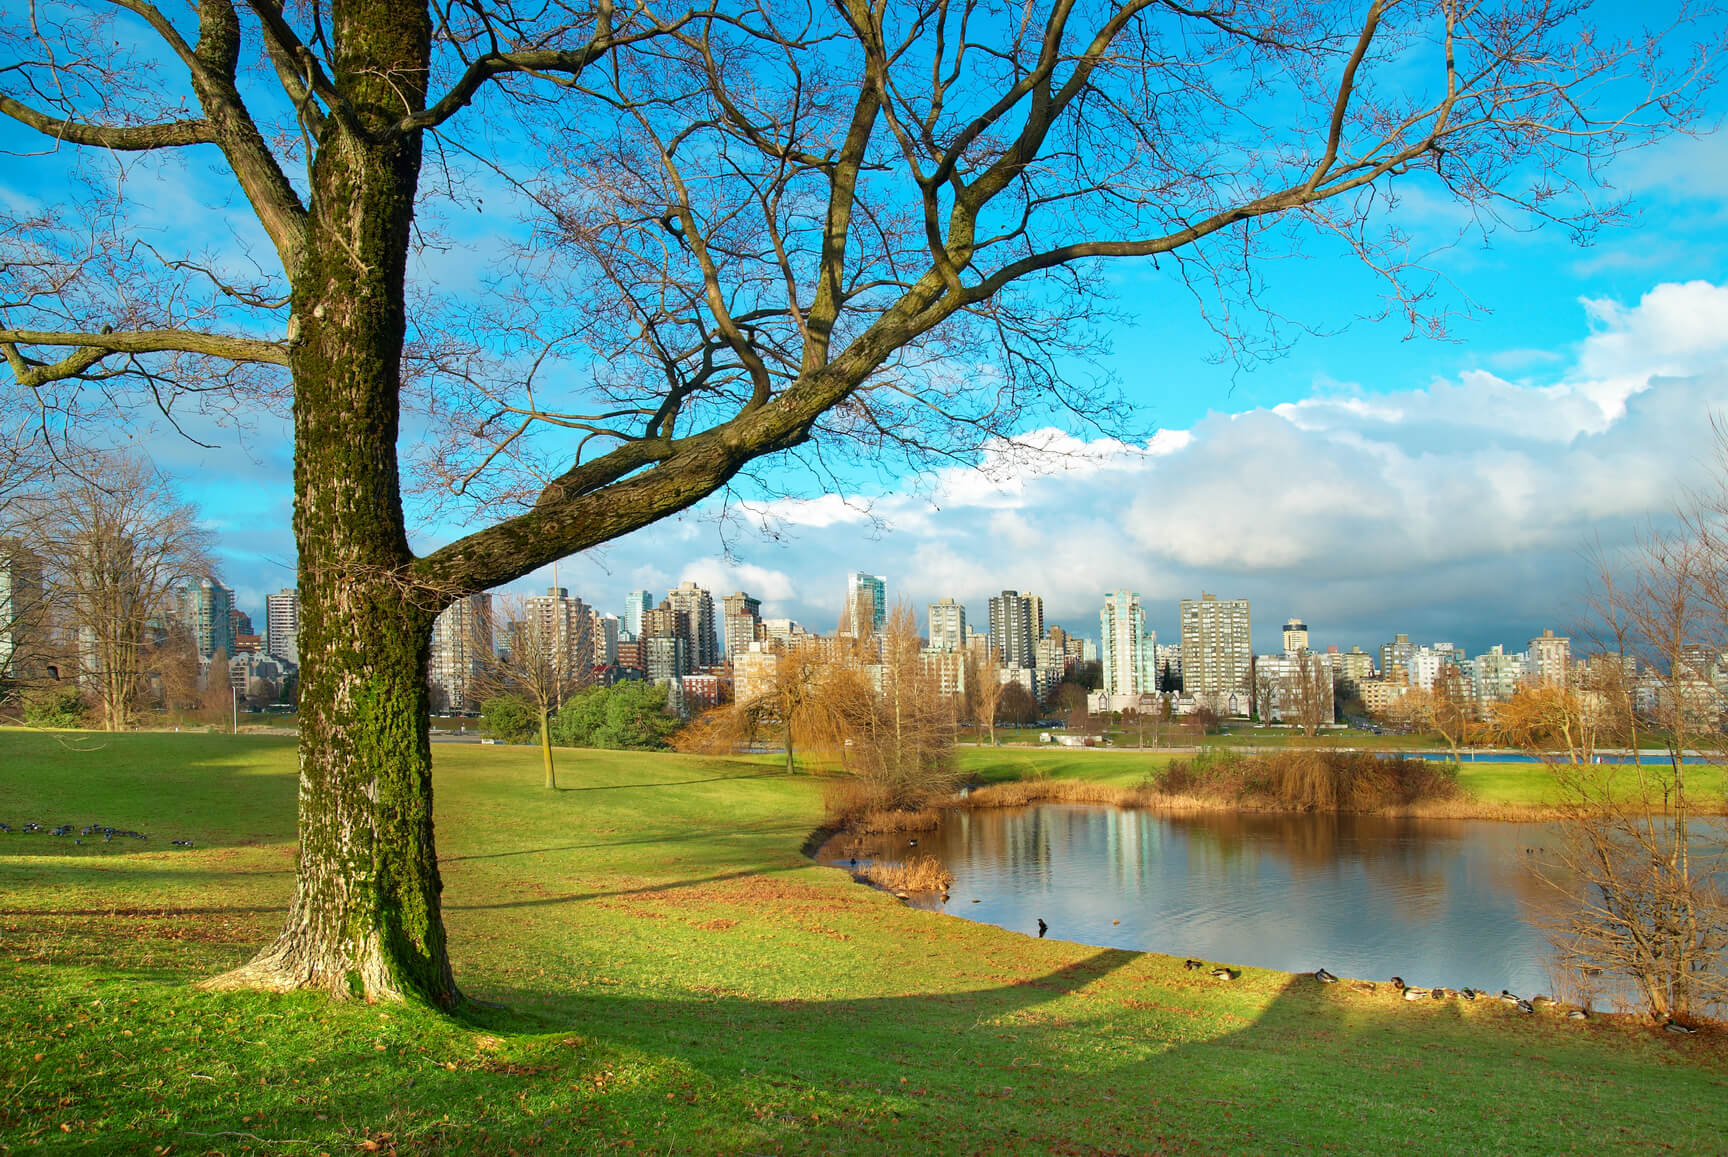 Paris, France to Vancouver, Canada for only €354 roundtrip